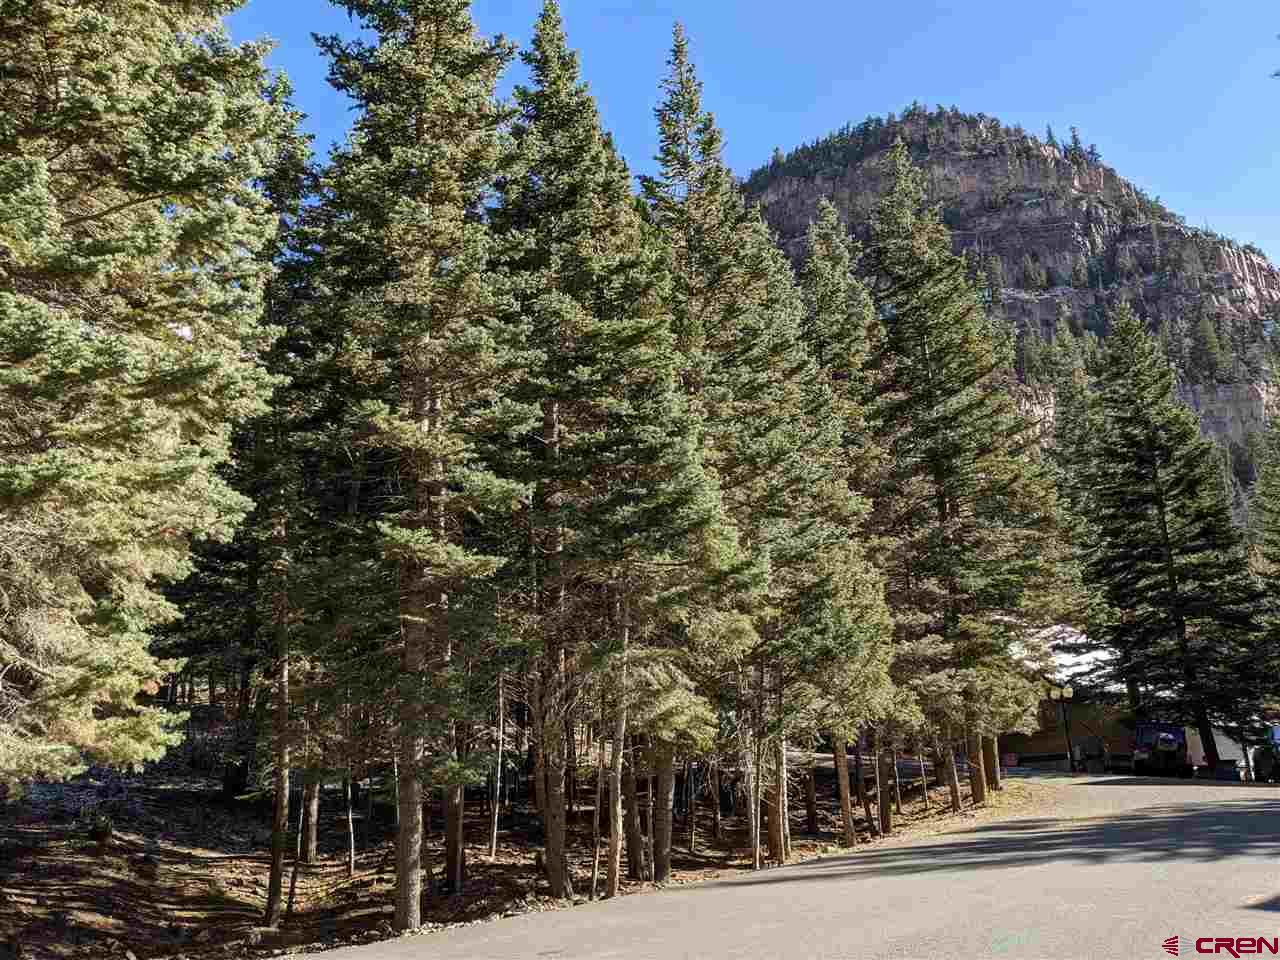 Ouray Vista Lane is located in a quiet, peaceful setting with pine trees and mountain views. Ouray Vista Lane is one of the few paved roads in Ouray. Enjoy the wildlife, fresh air, outdoor recreation and iconic landscape! The heart of Ouray is a 2 minute drive or a short walk.